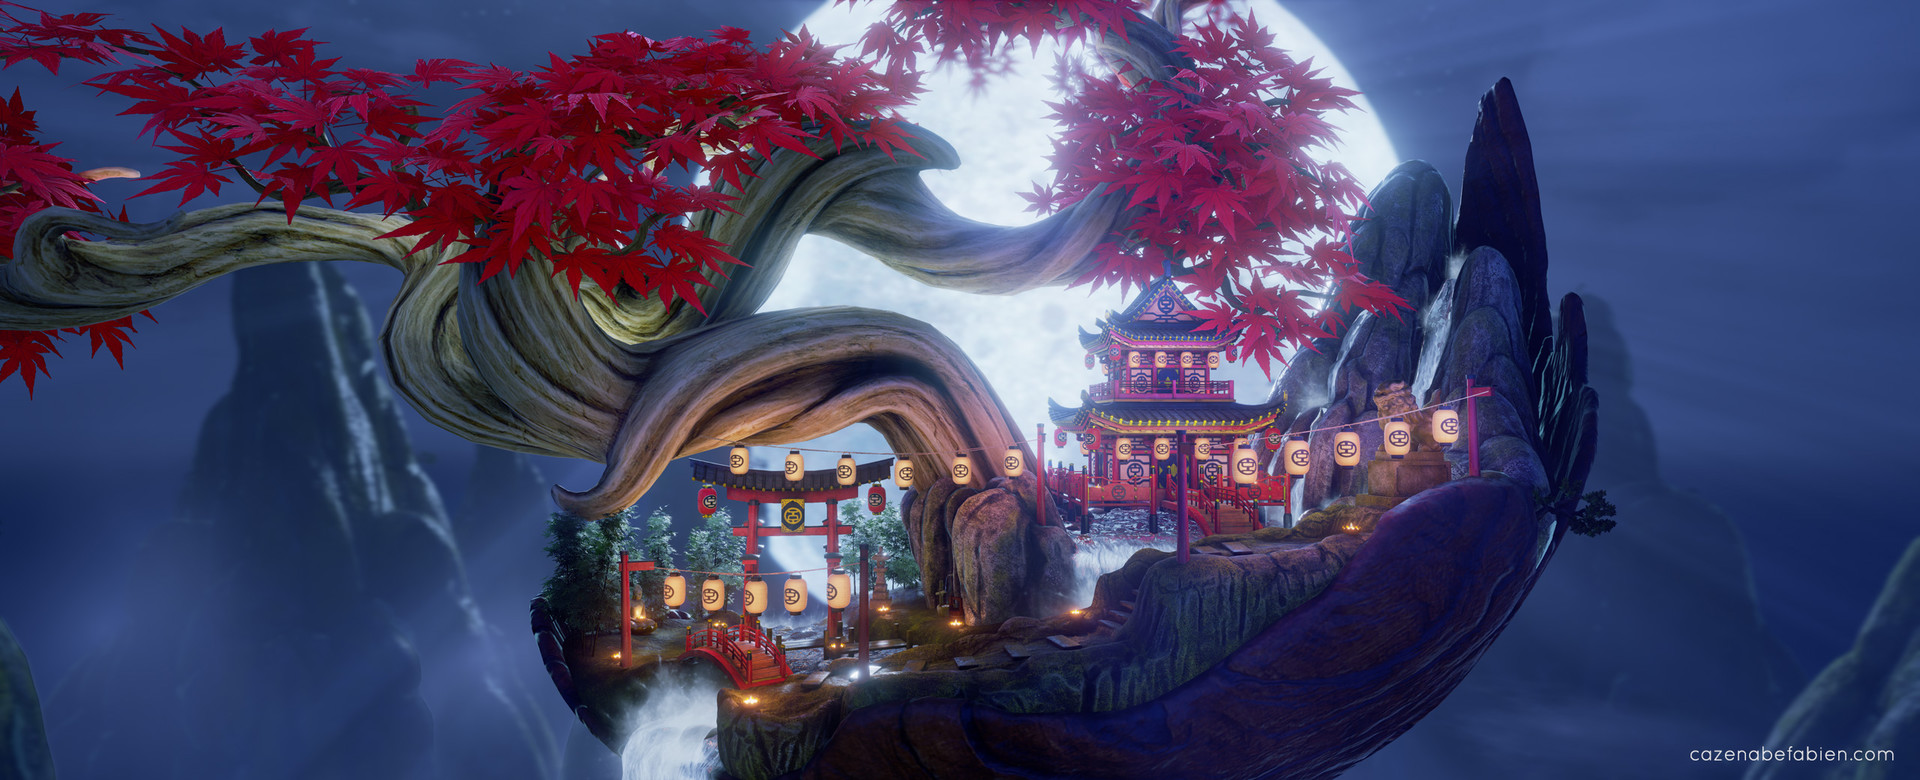 Fabien cazenabe lost japanese temple 3d environment art design unreal engine 03